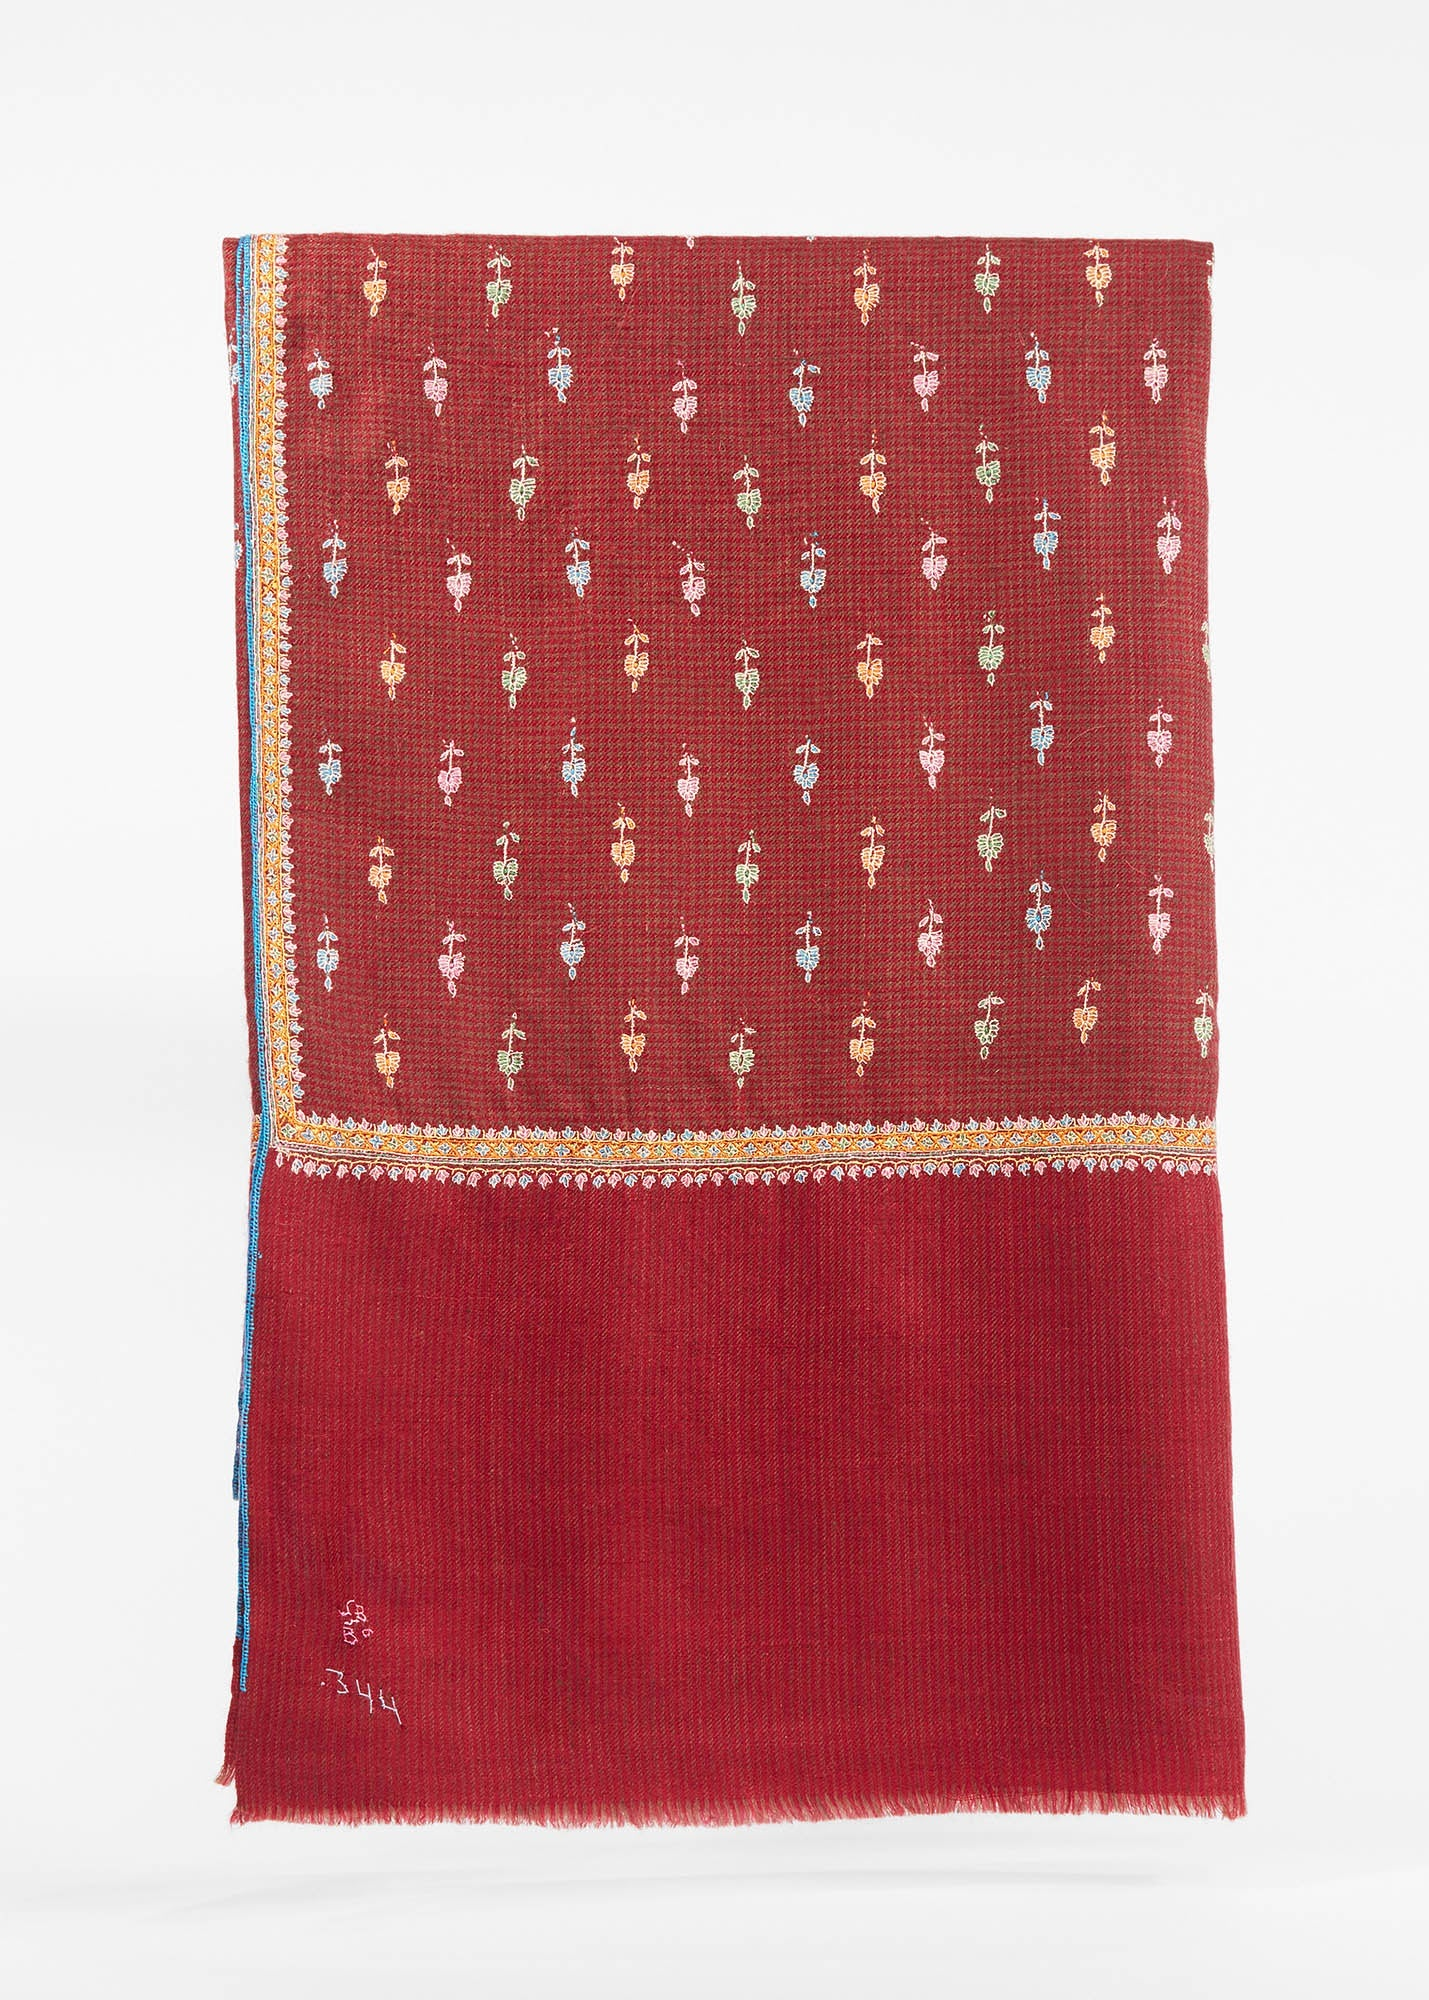 Embroidered Pashmina Shawl Maroon/ Brown